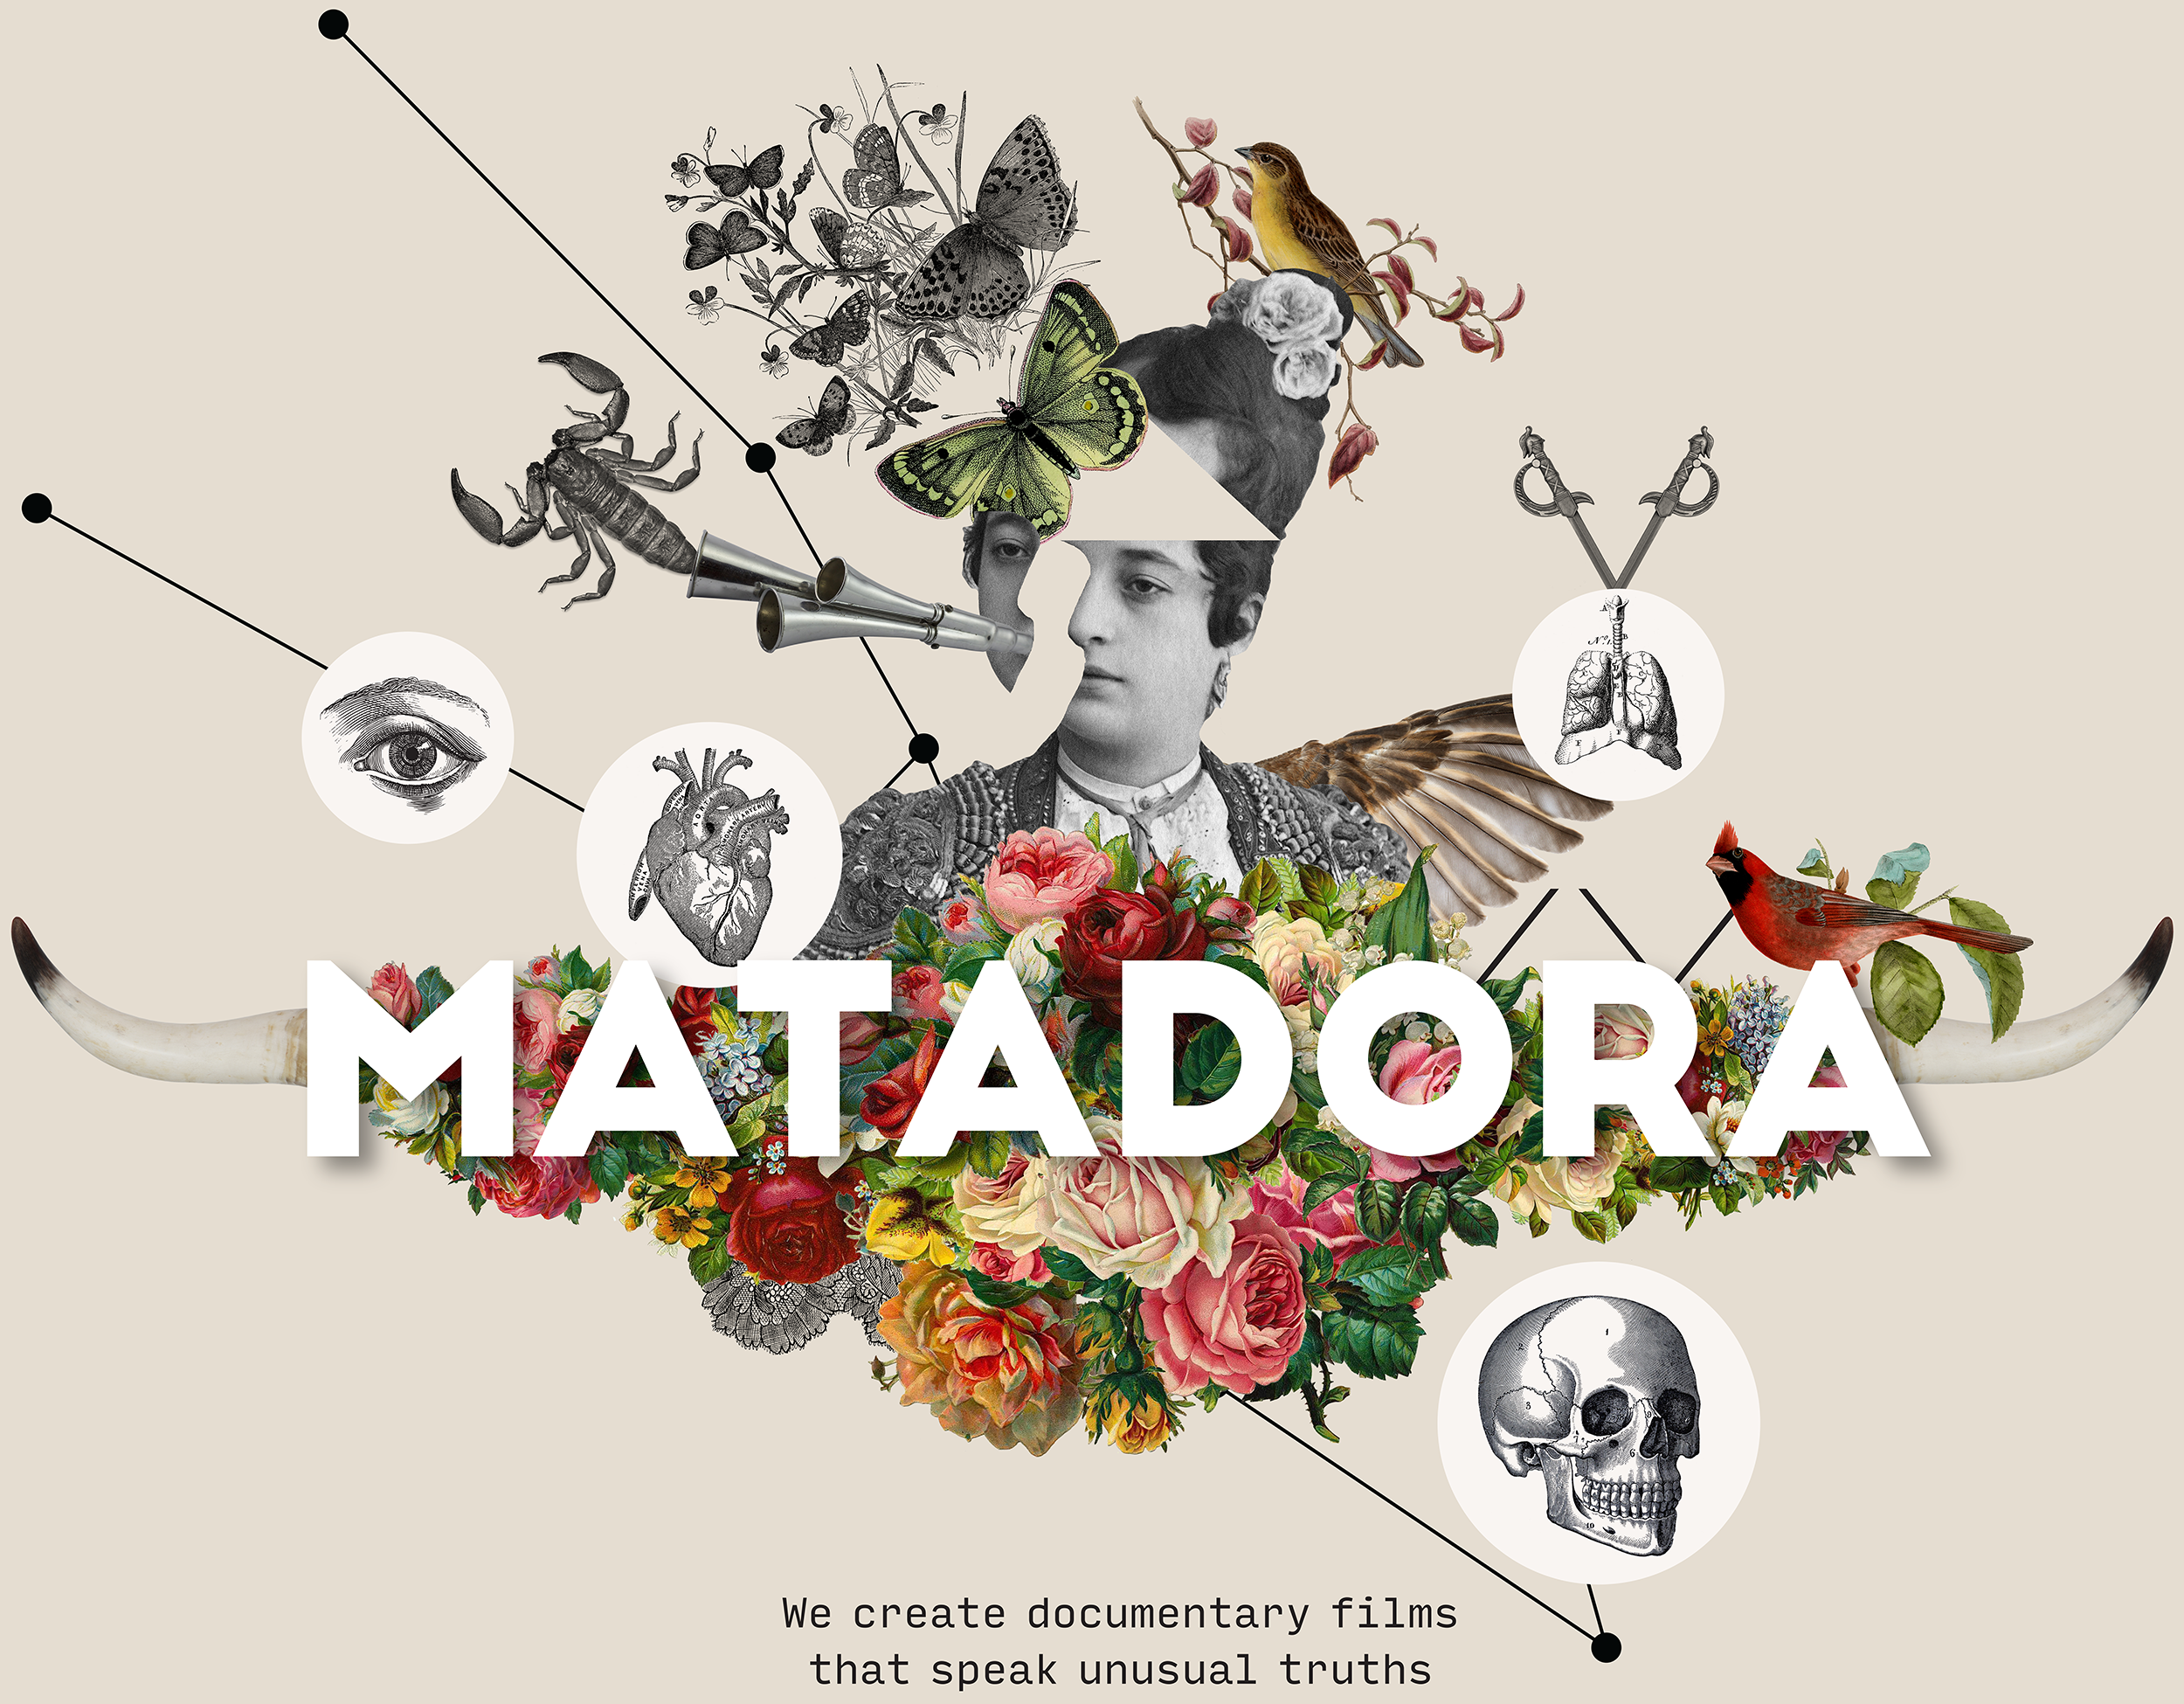 Matadora_logo_cream_background_RGB_large_NEW.png